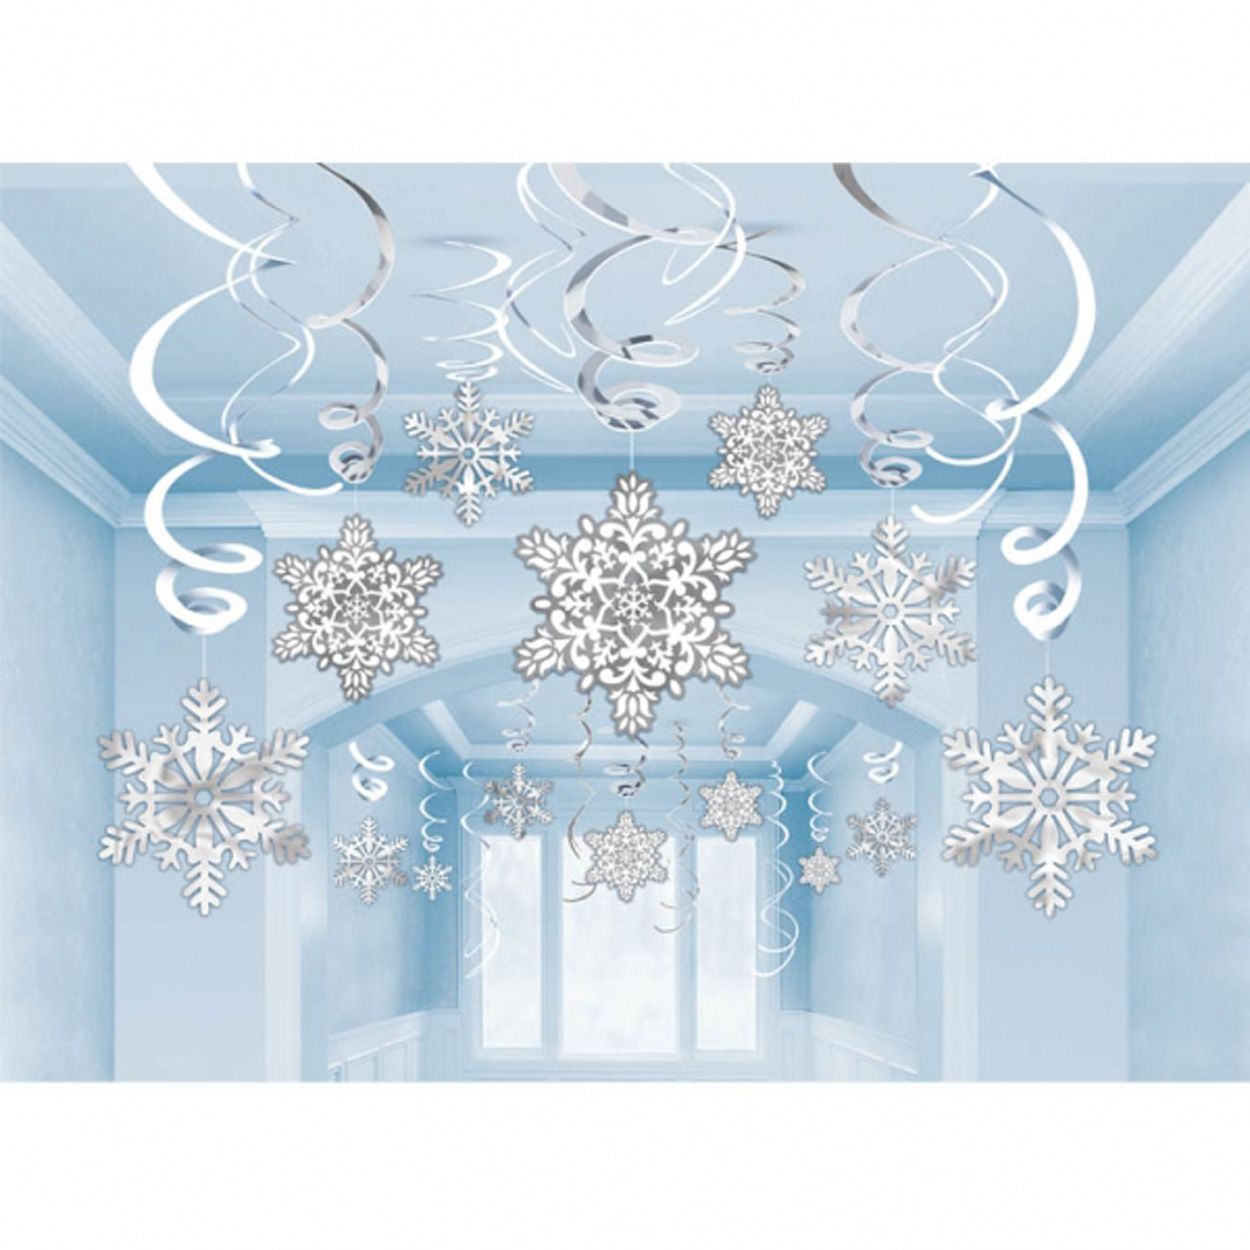 30 X Hanging Christmas Snowflake Foil Swirl Party Decorations